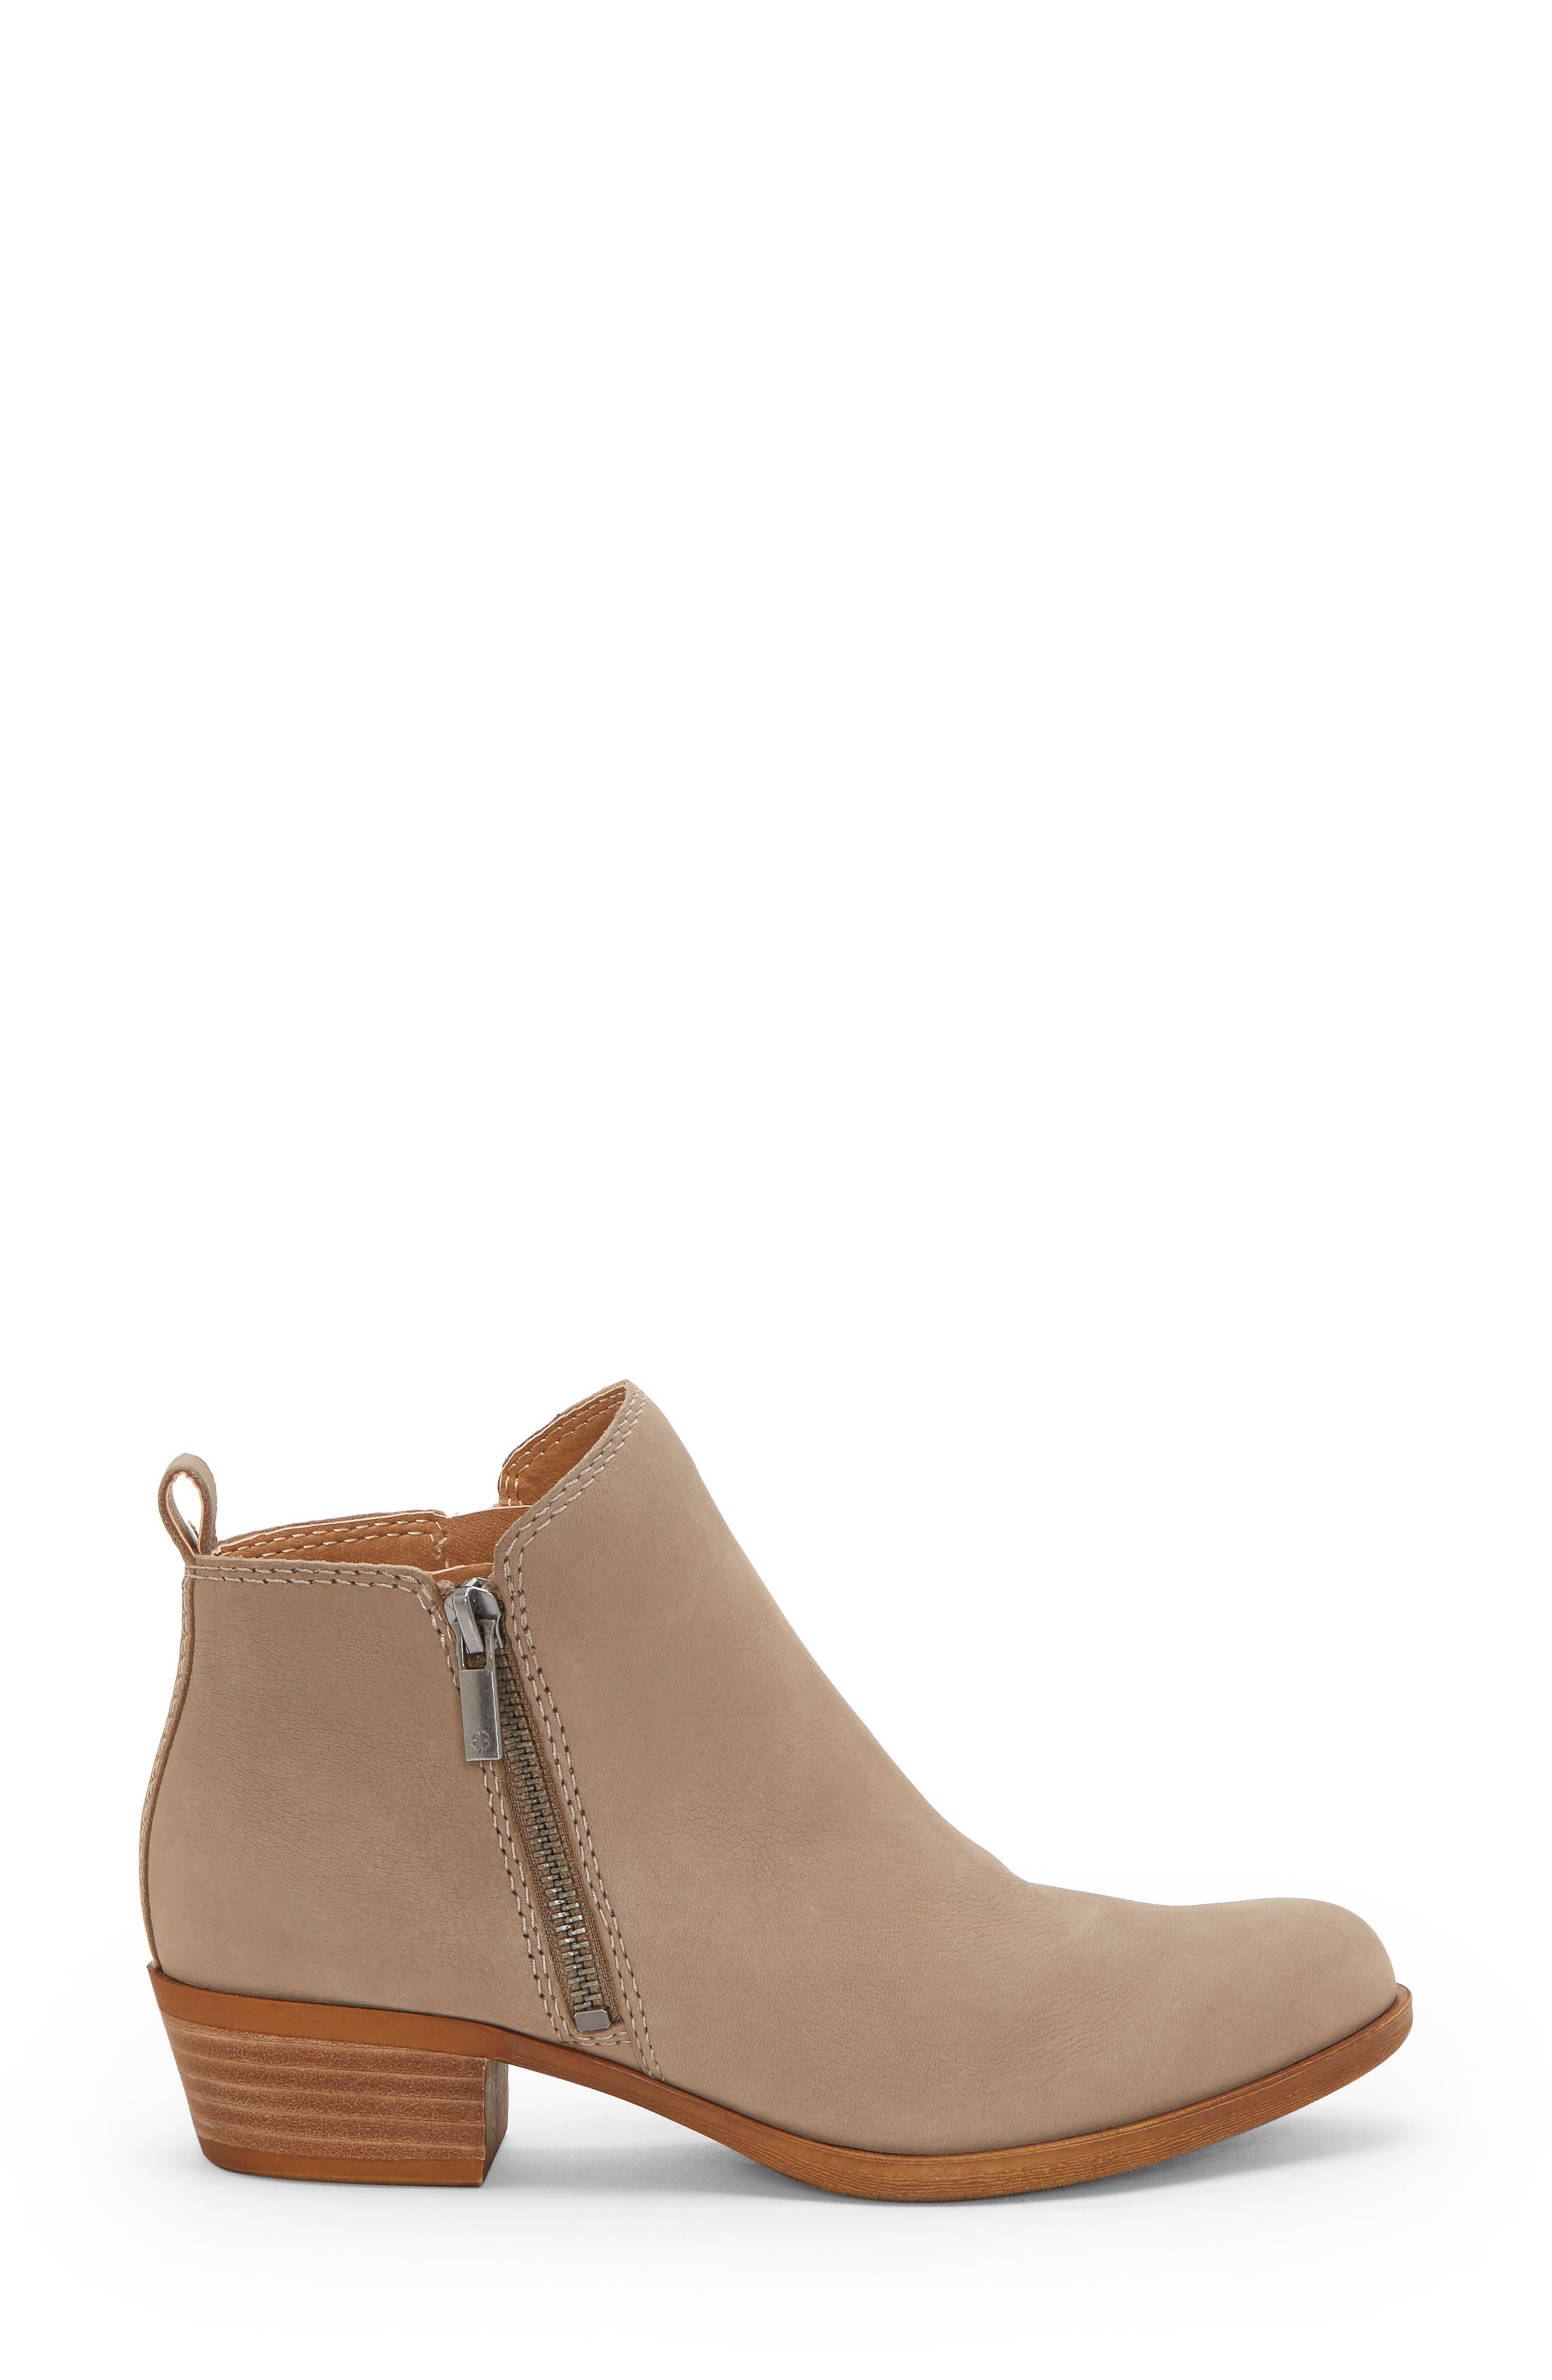 Basel Bootie,                             Alternate thumbnail 2, color,                             CHINCHILLA SUEDE